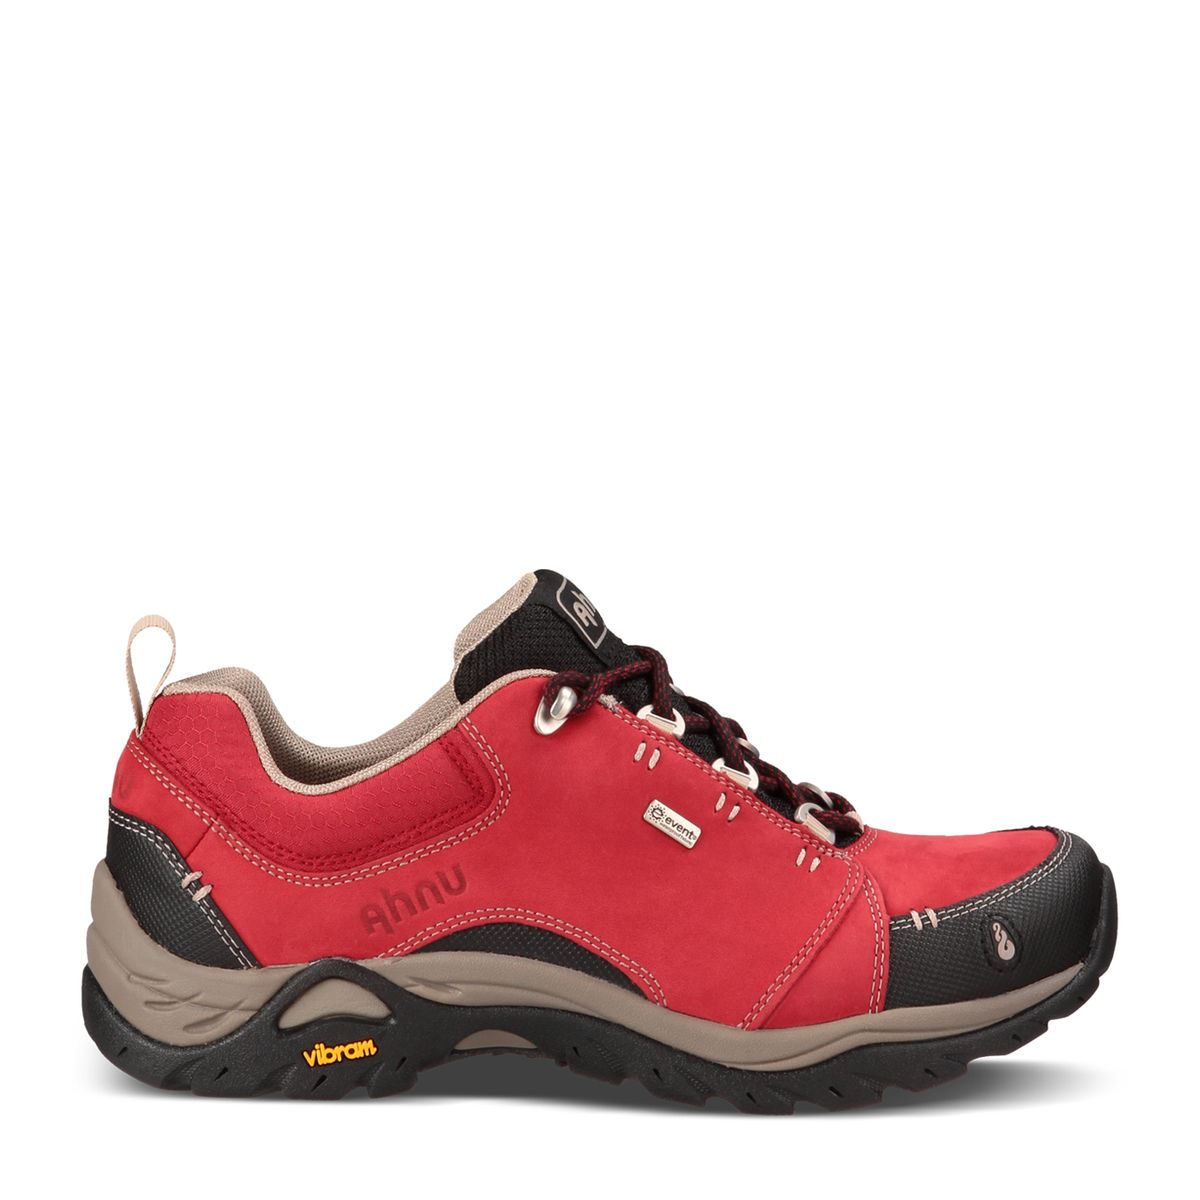 montara women The ahnu women's montara boots are great lightweight boots that provide more ankle stability than your average hiking shoe, .